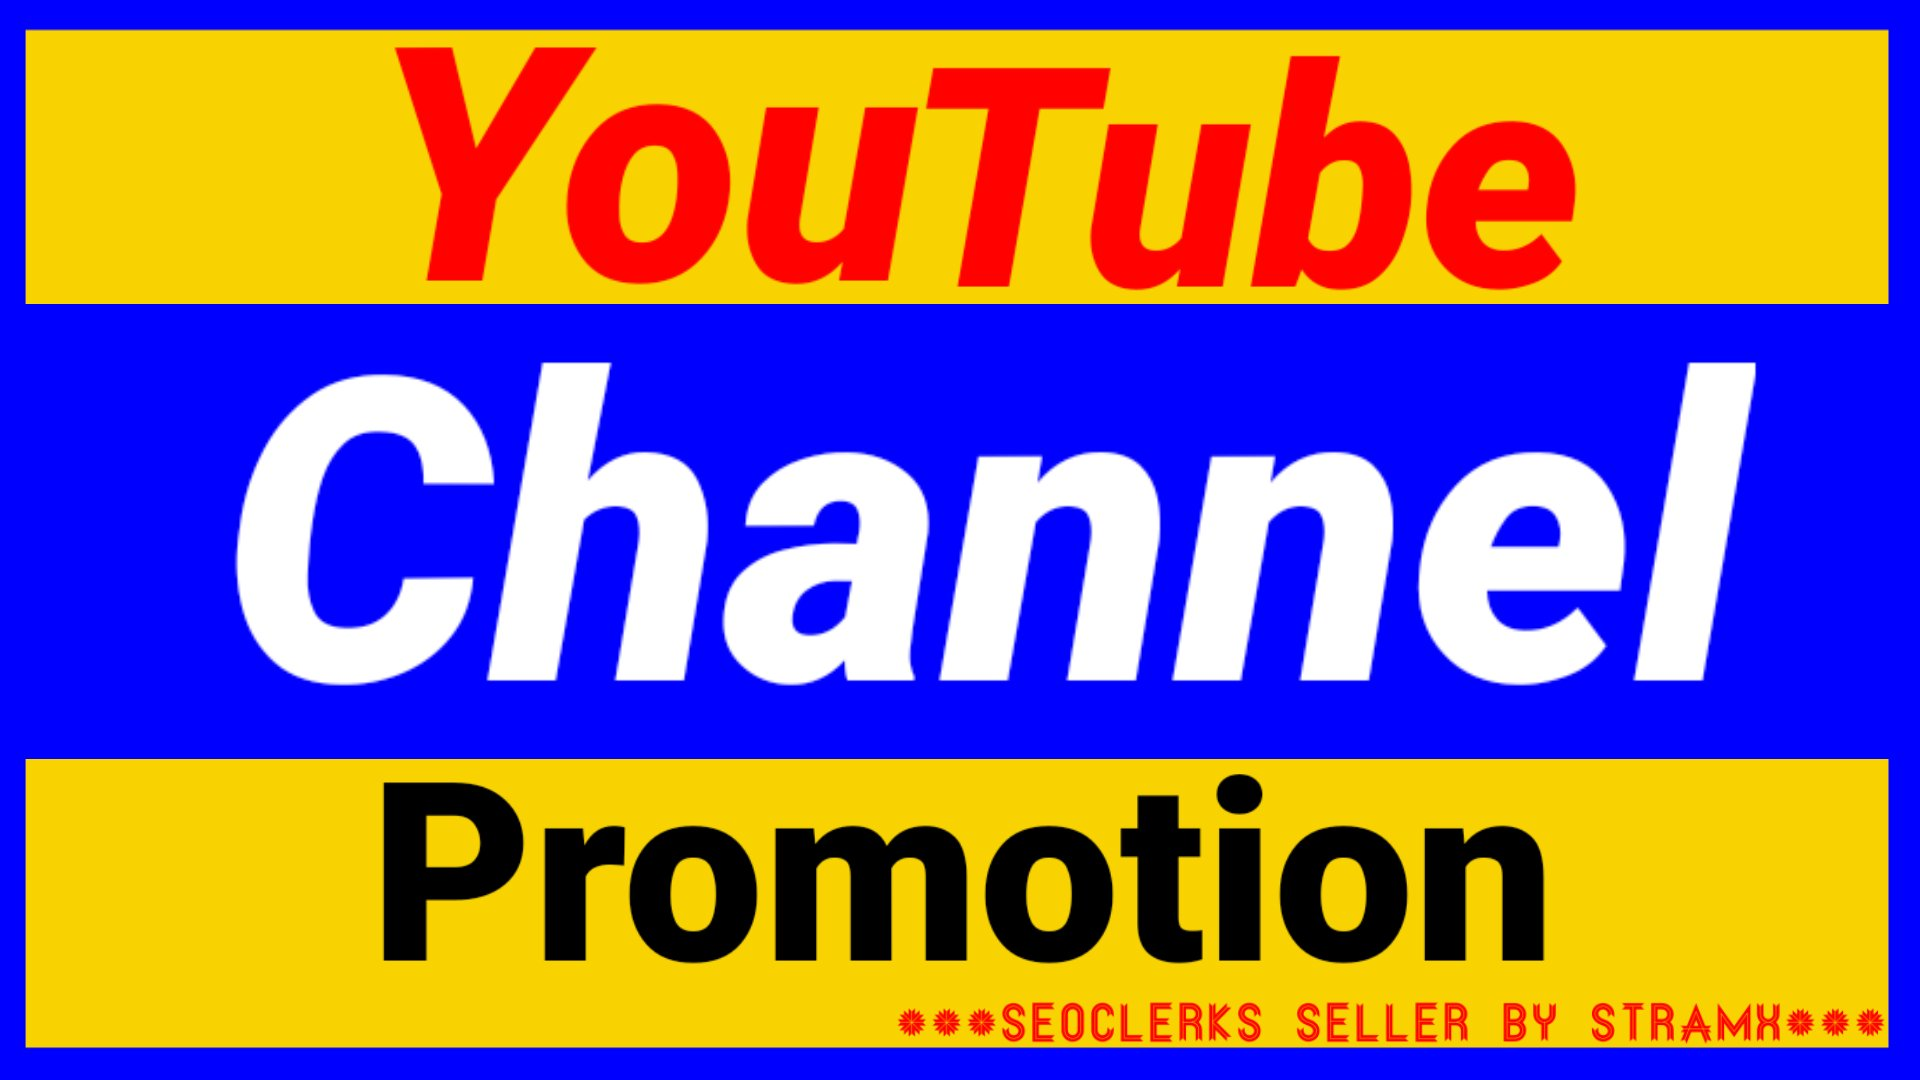 YOUTUBE VIDEO PROMOTION 12 HOURS FAST DELIVERY